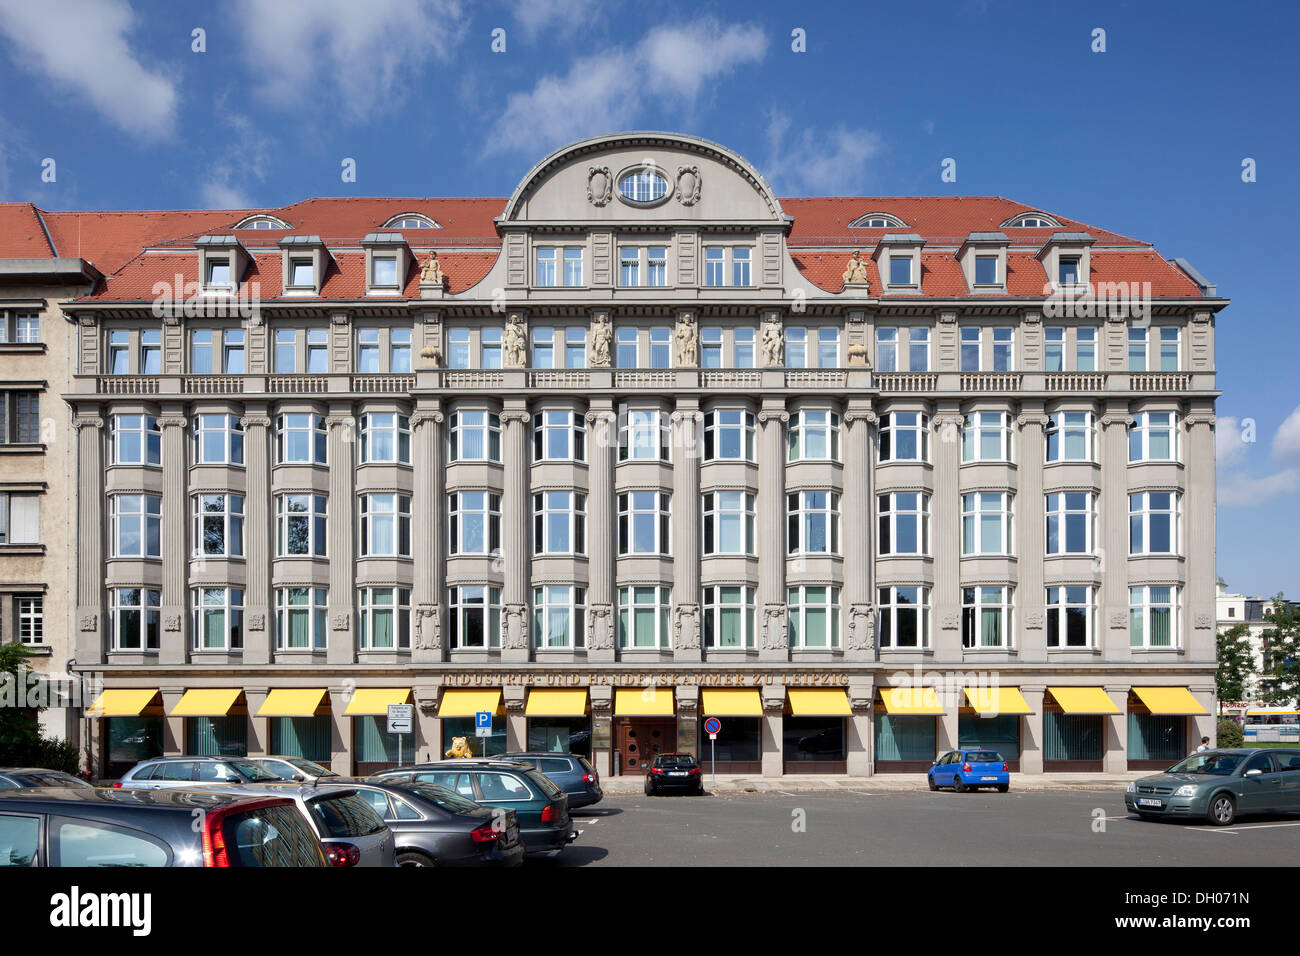 Building of the Chamber of Industry and Commerce, Leipzig, PublicGround - Stock Image